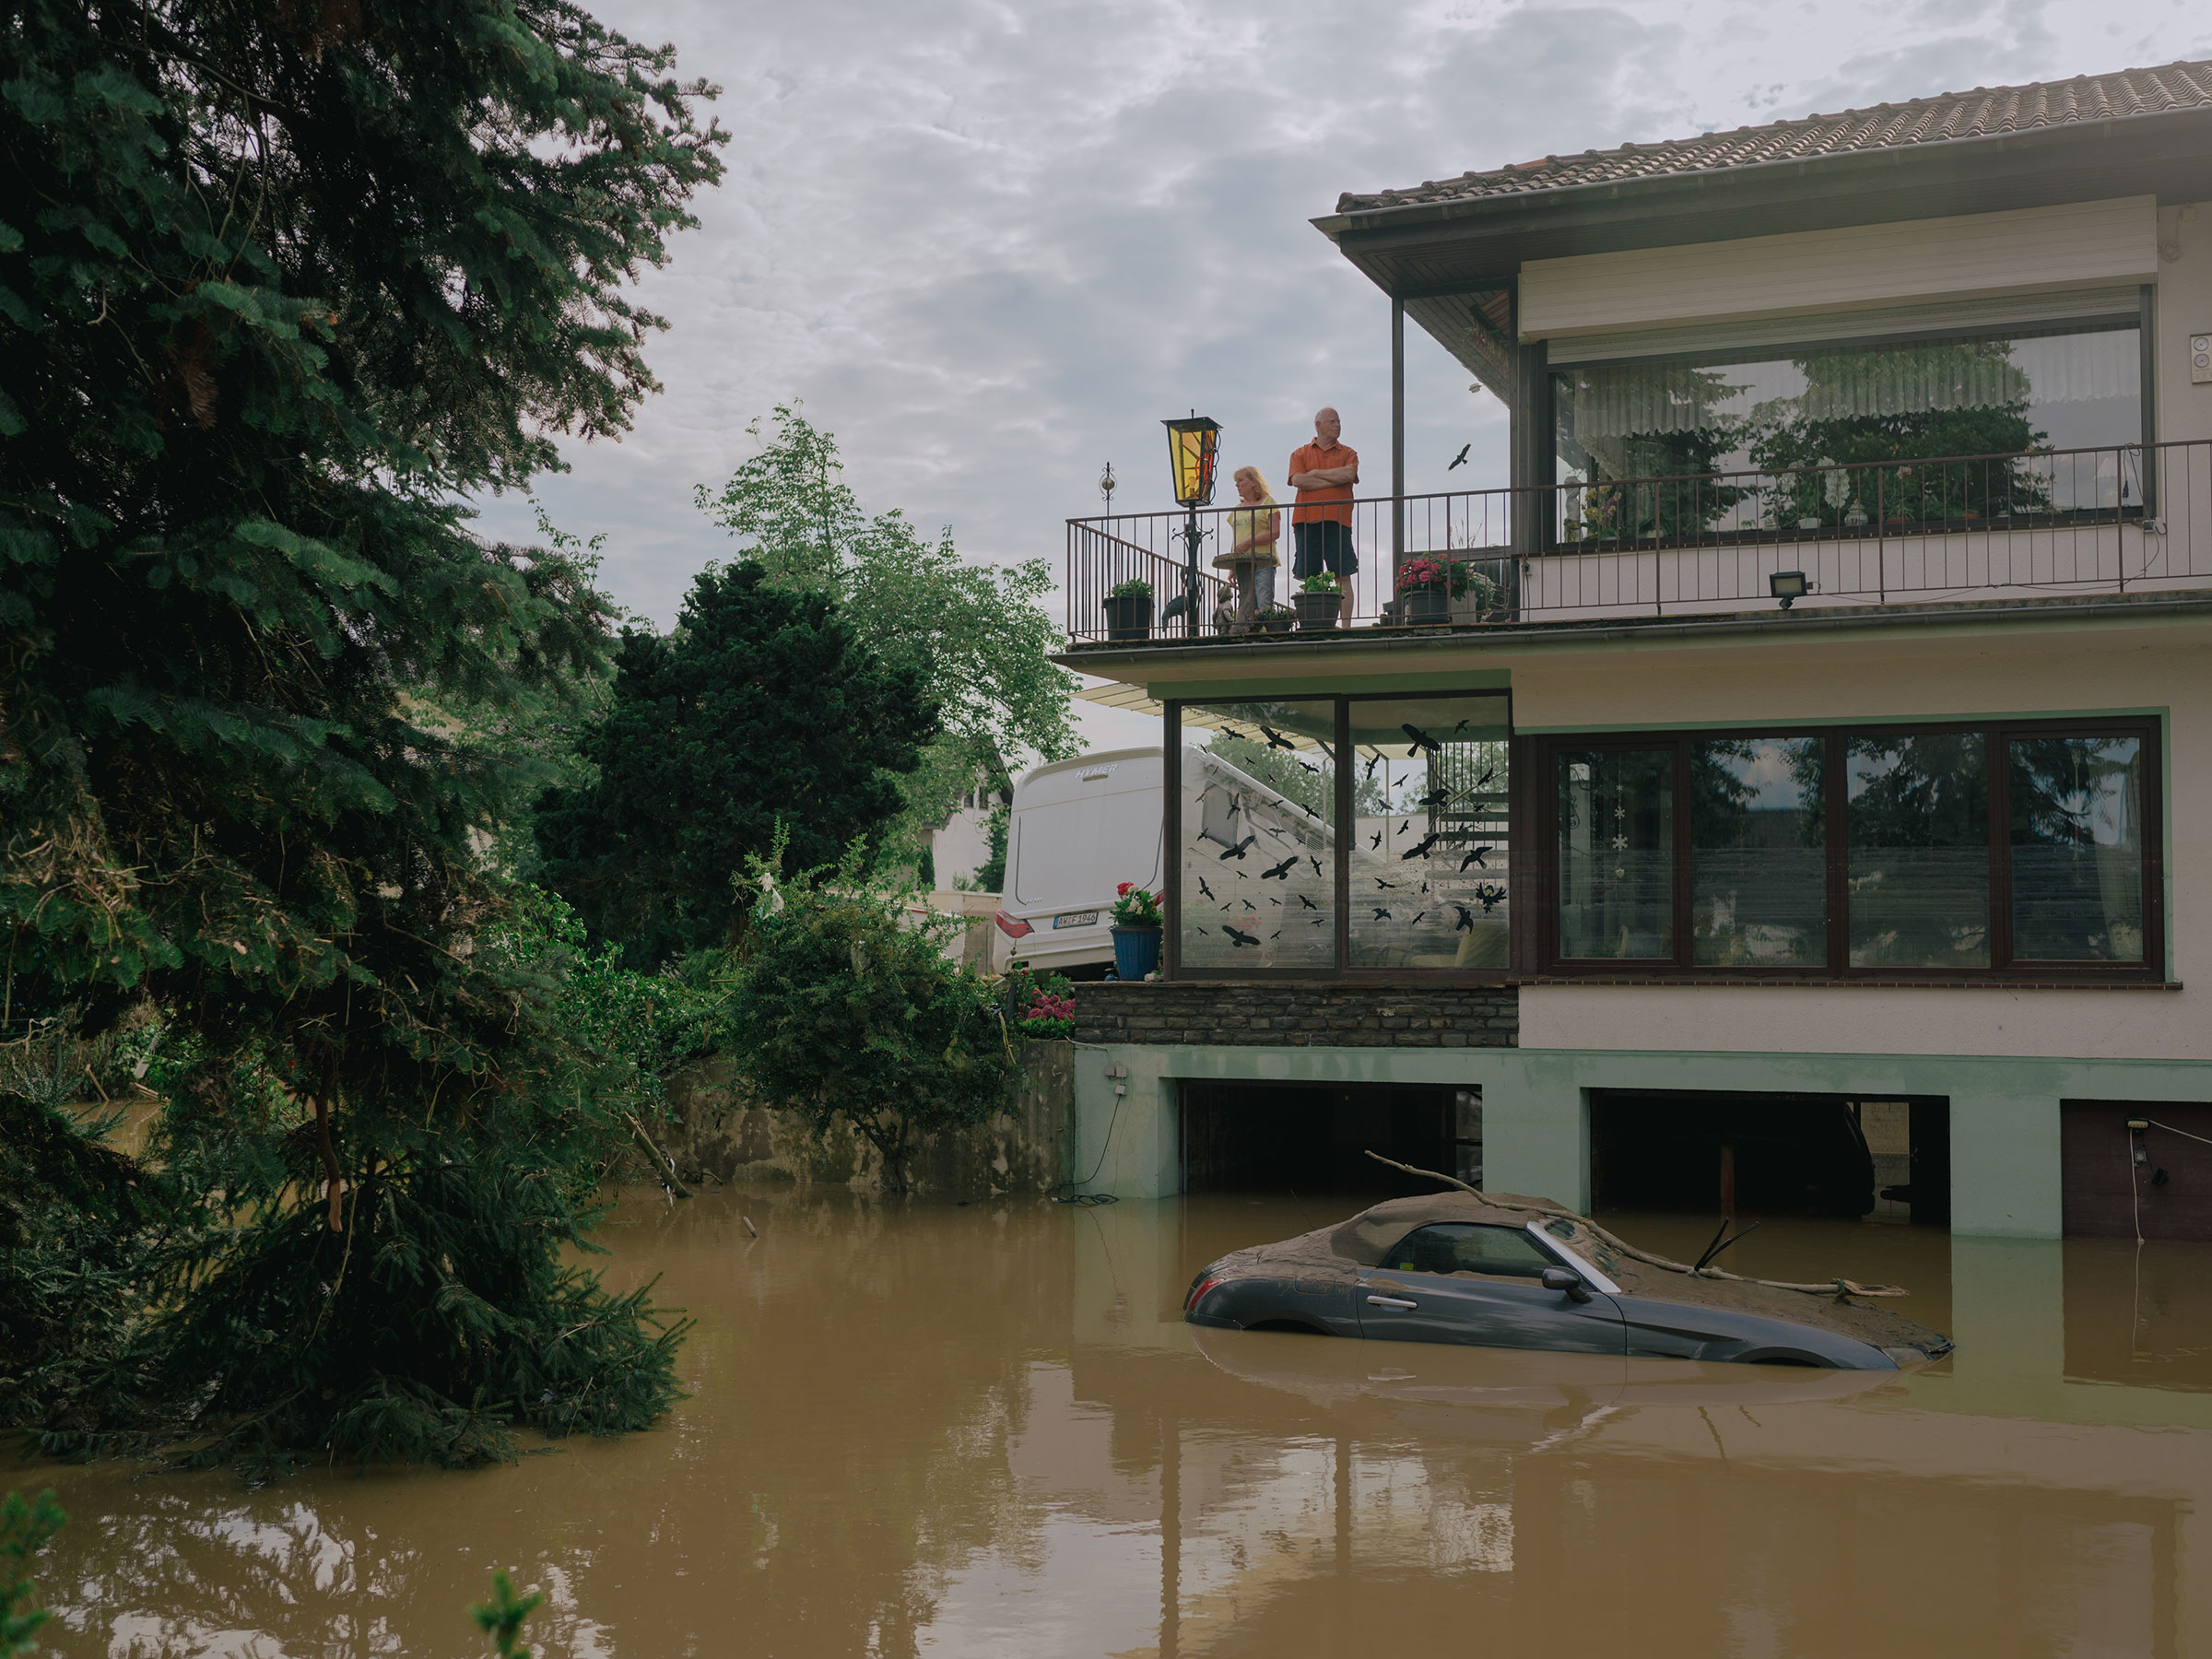 People stand on a balcony above the floodwaters in Ahrweiler, Germany, July 15, 2021.